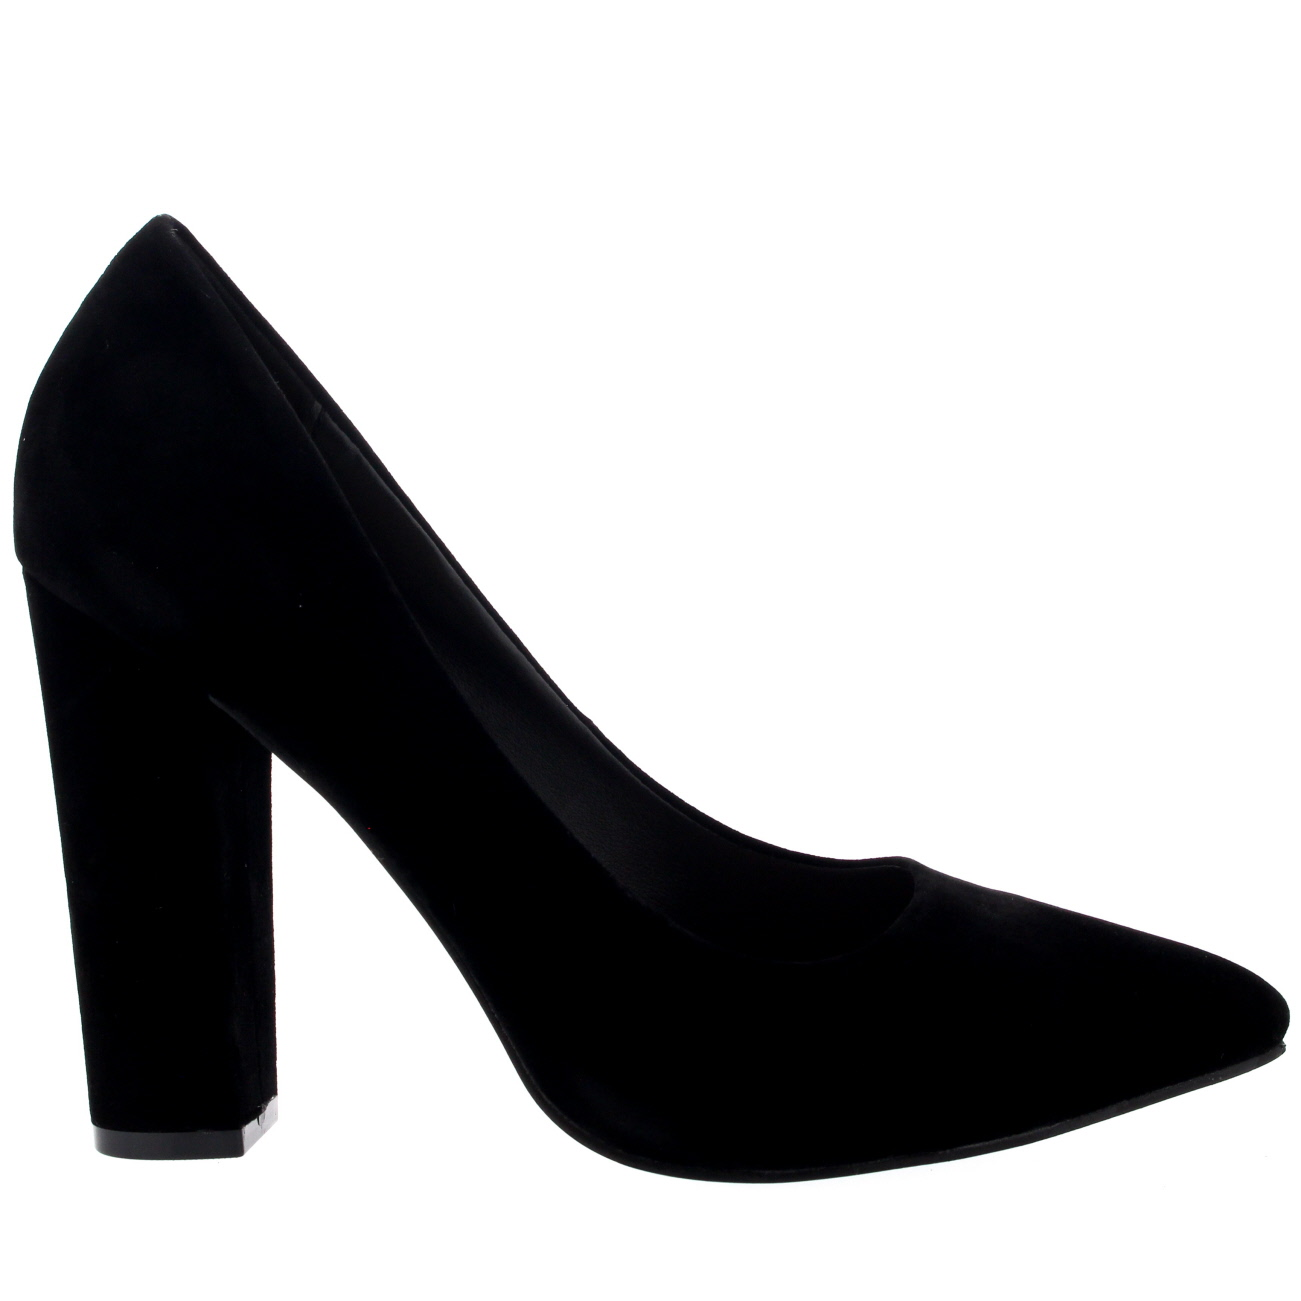 Womens-Office-Evening-Block-Heel-Pointed-Toe-Pumps-